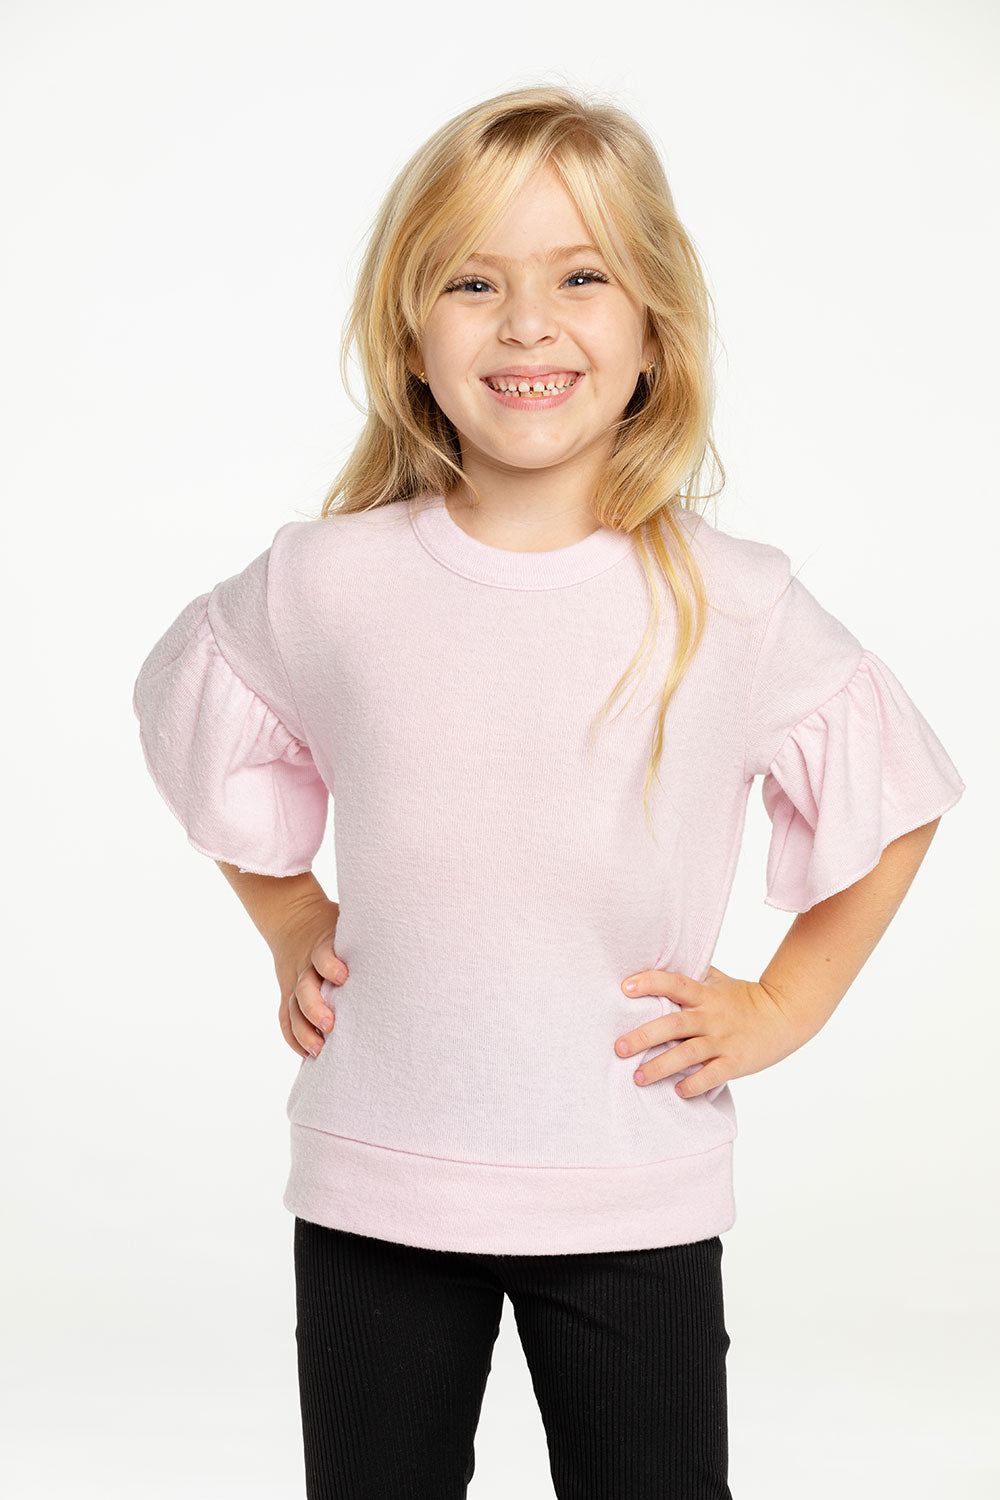 Girls RPET Bliss Knit Peplum Sleeve Pullover GIRLS - chaserbrand